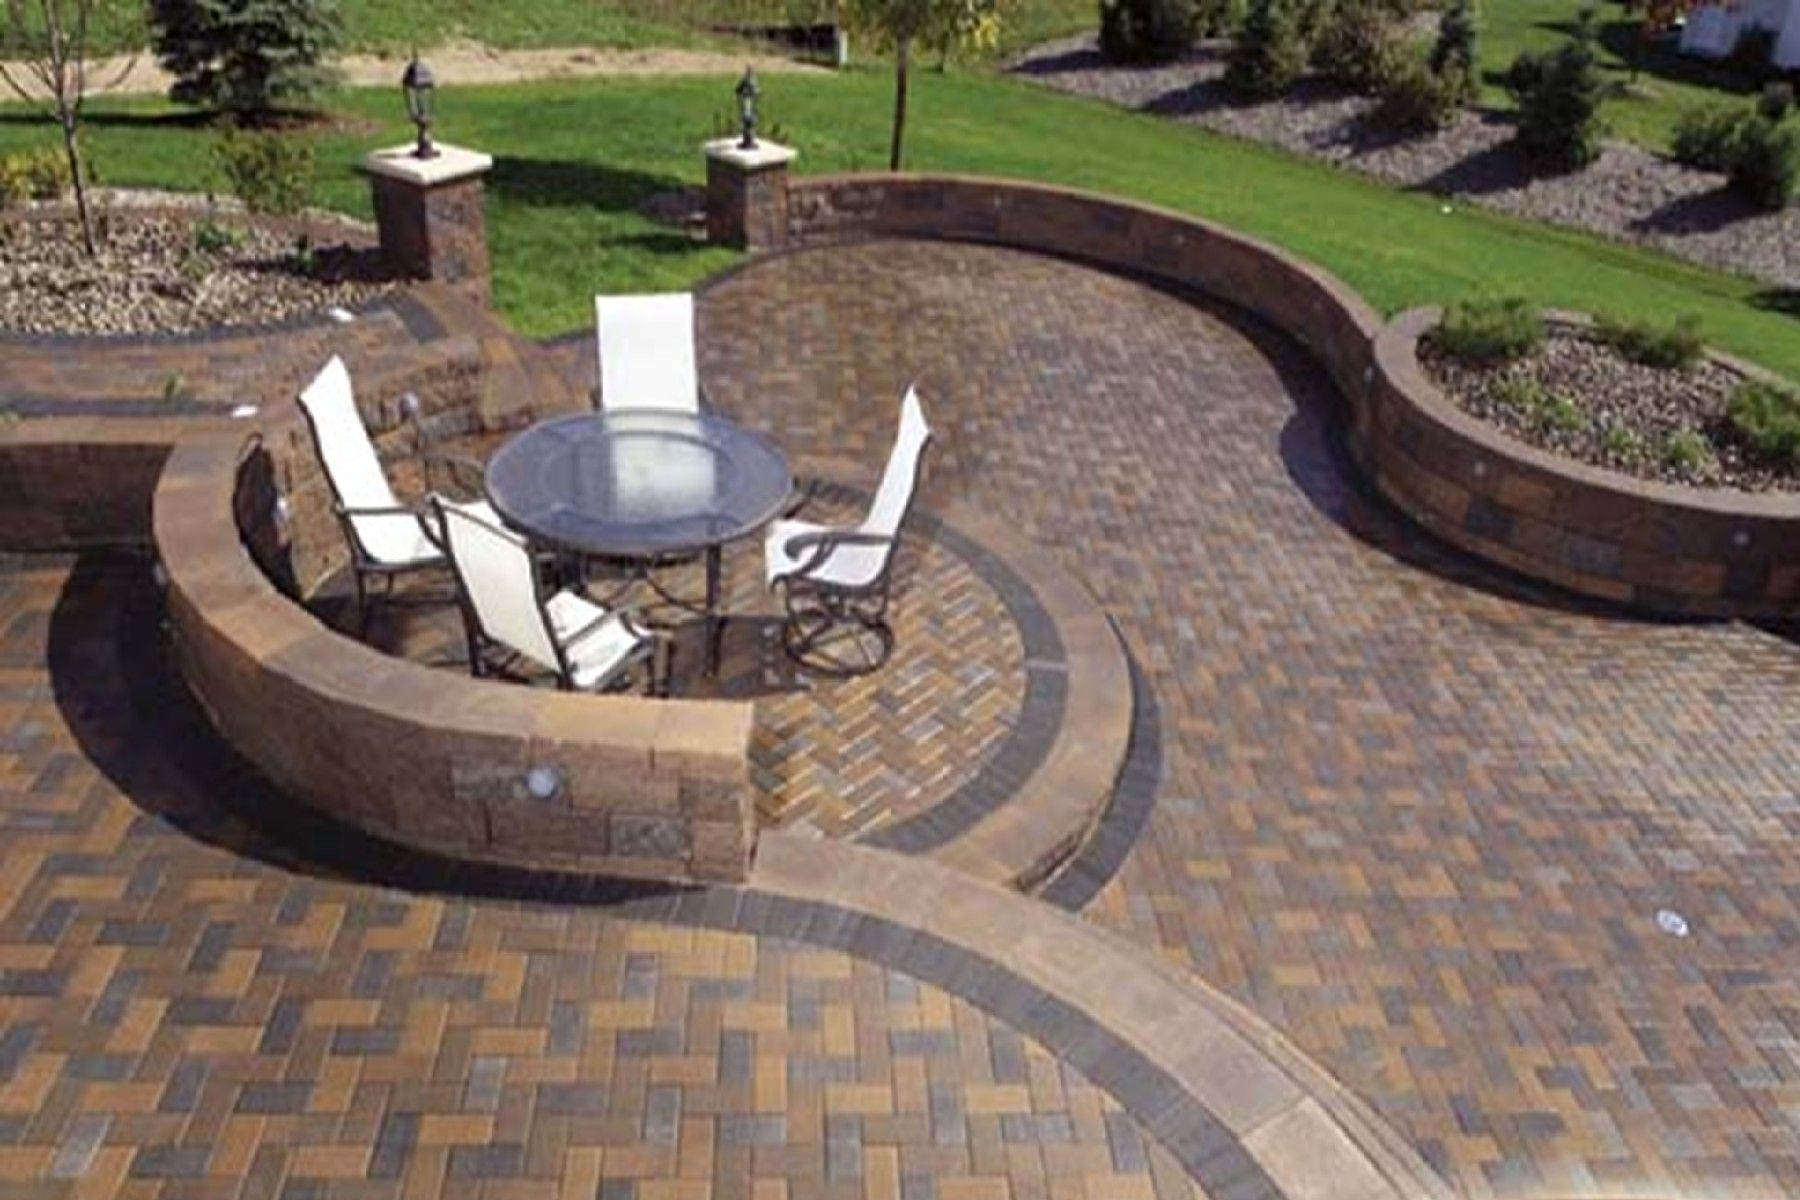 1000 images about paver patio on pinterest paver patterns paver patio designs and patio - Patio Paver Design Ideas